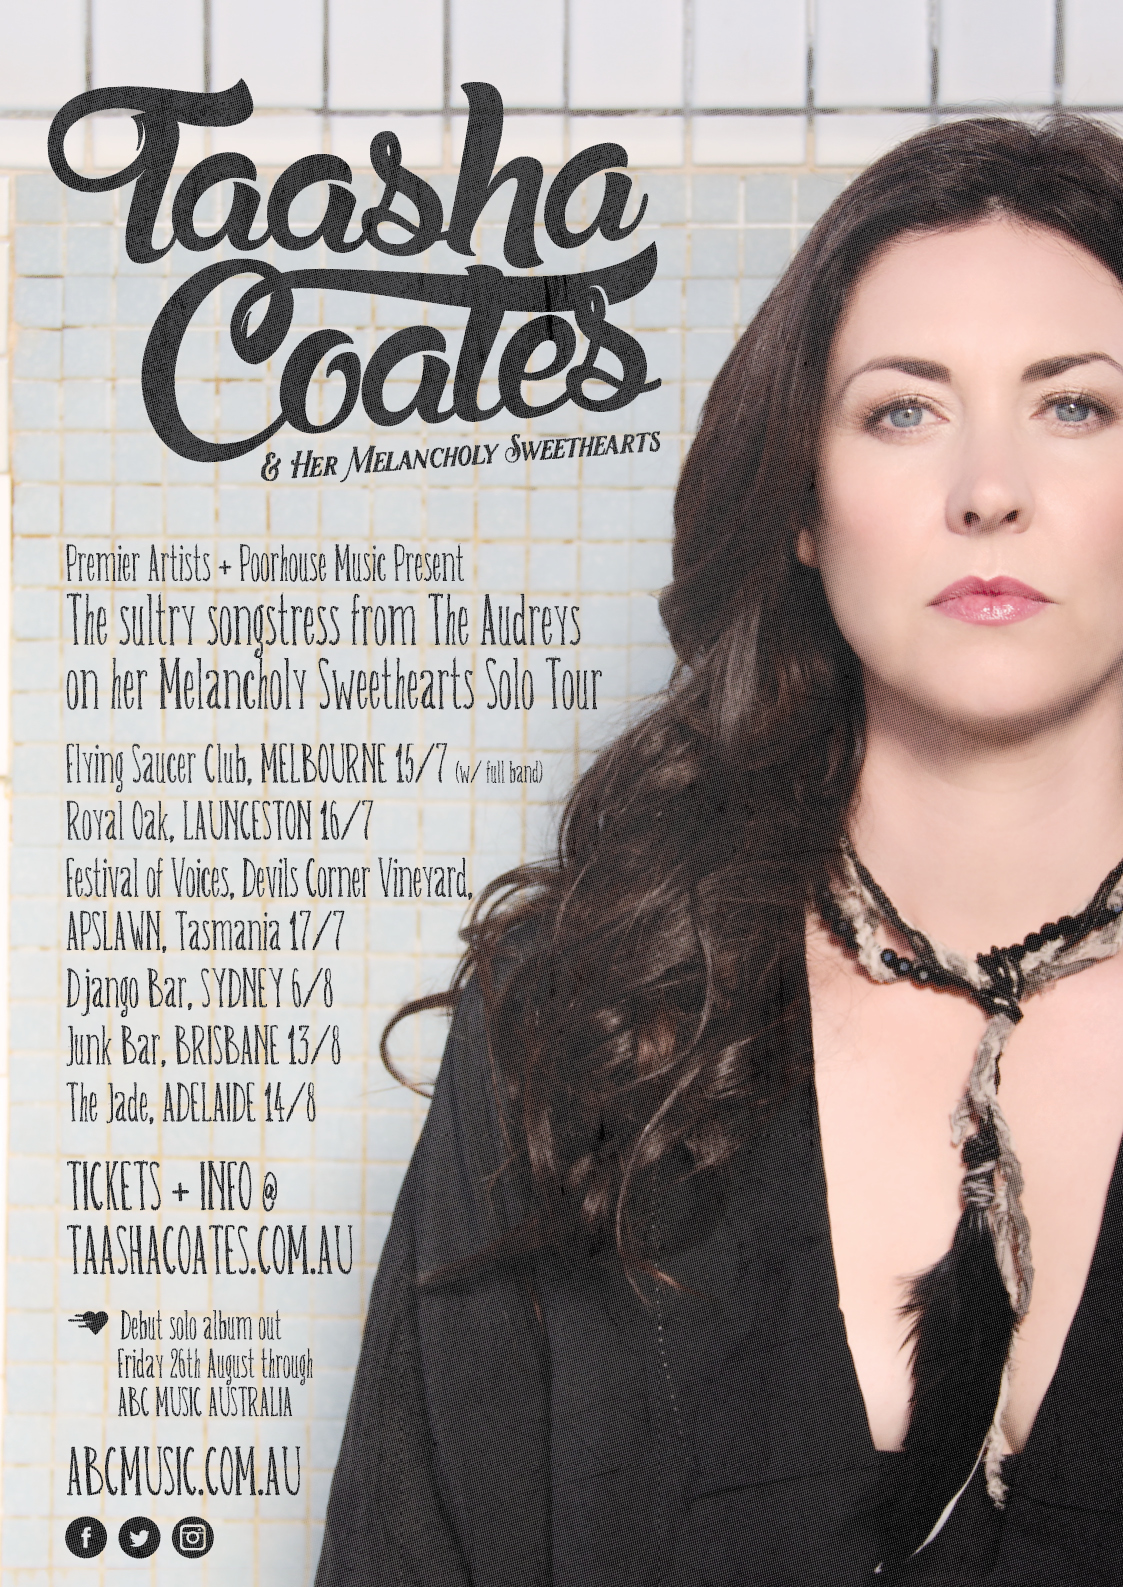 Taasha-Coates-A3-Poster-Single-Tour